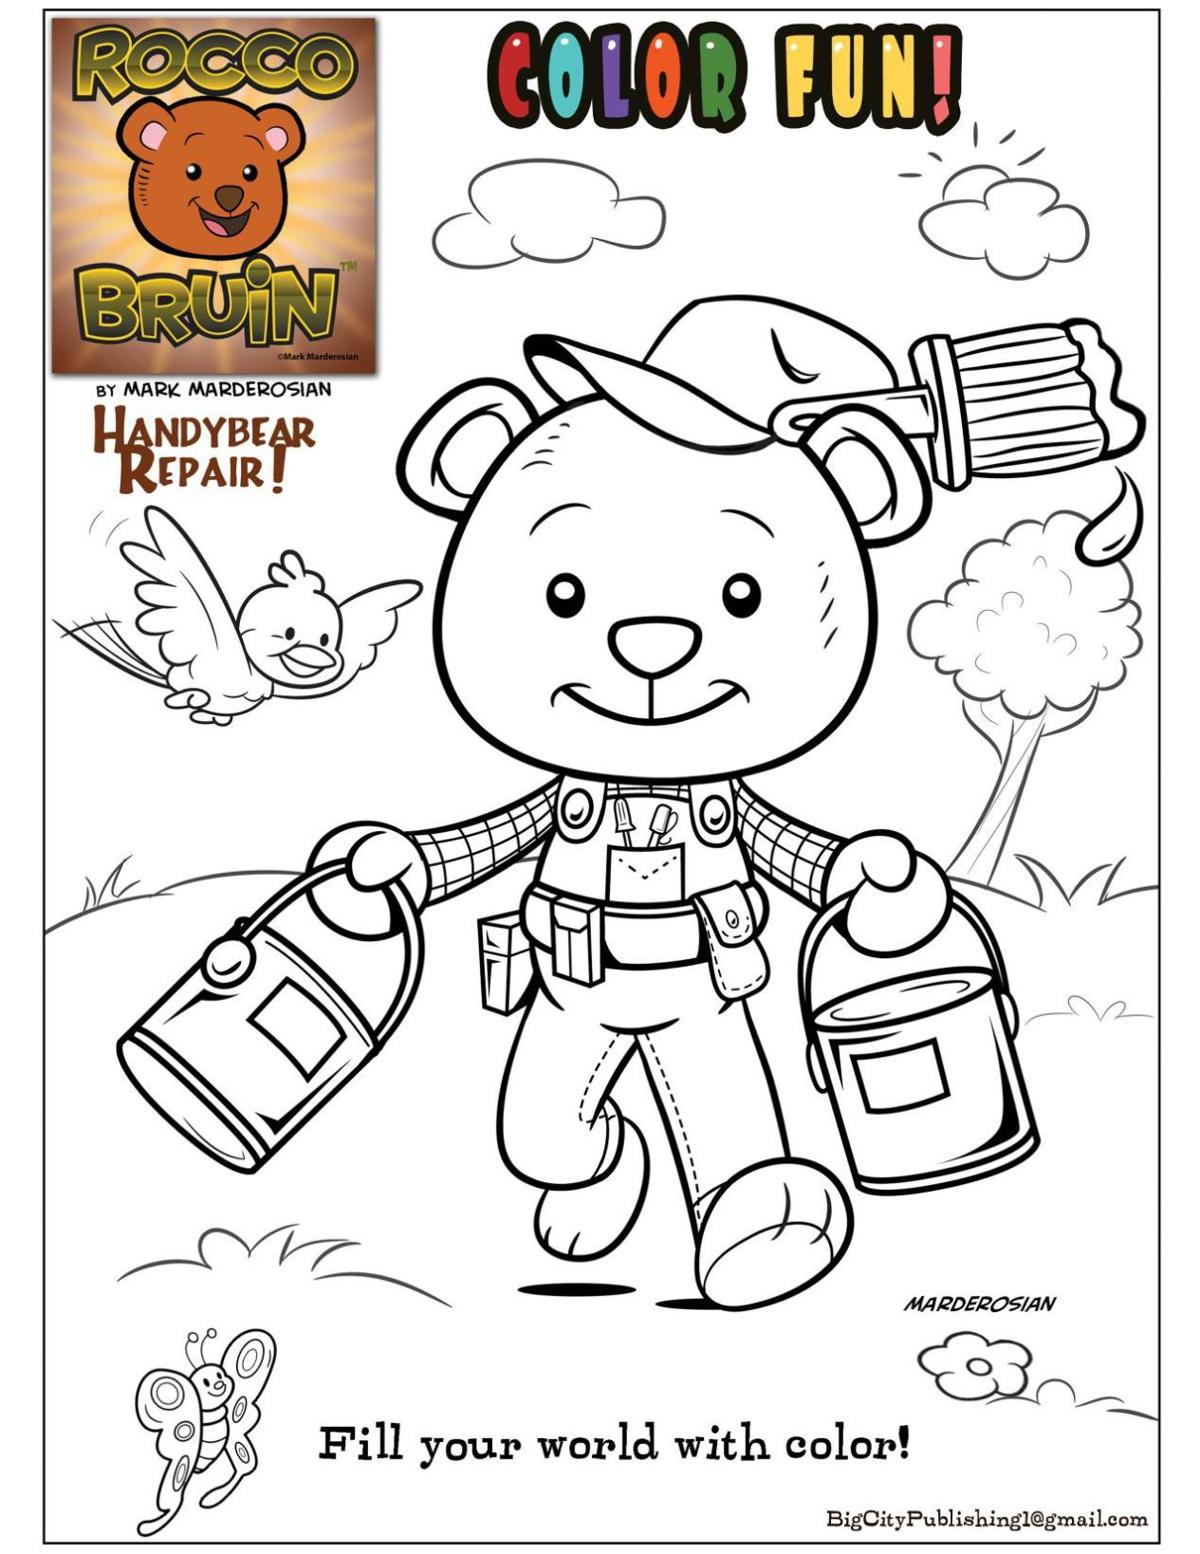 Coloring fun with Rocco Bruin